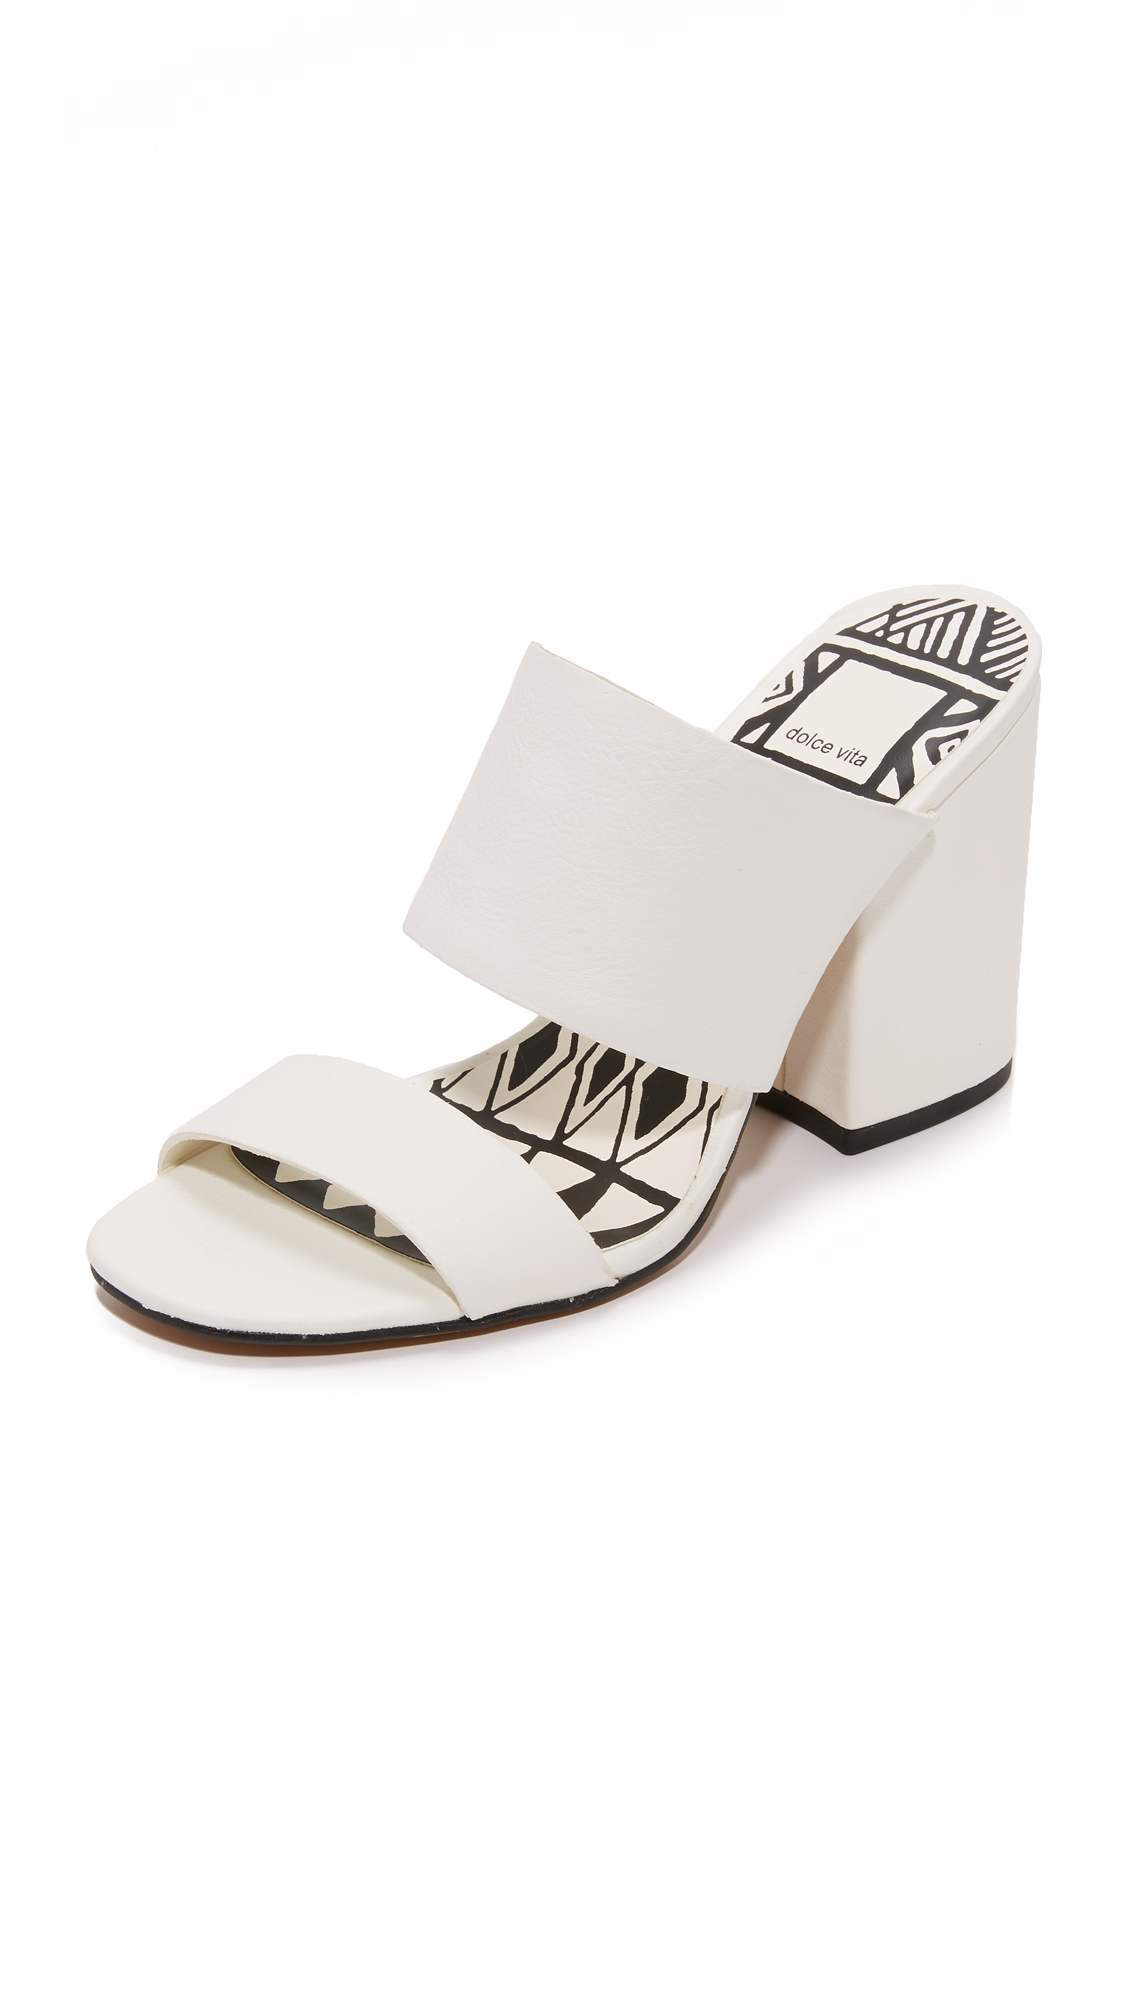 Dolce Vita Elize Mules - White at Shopbop